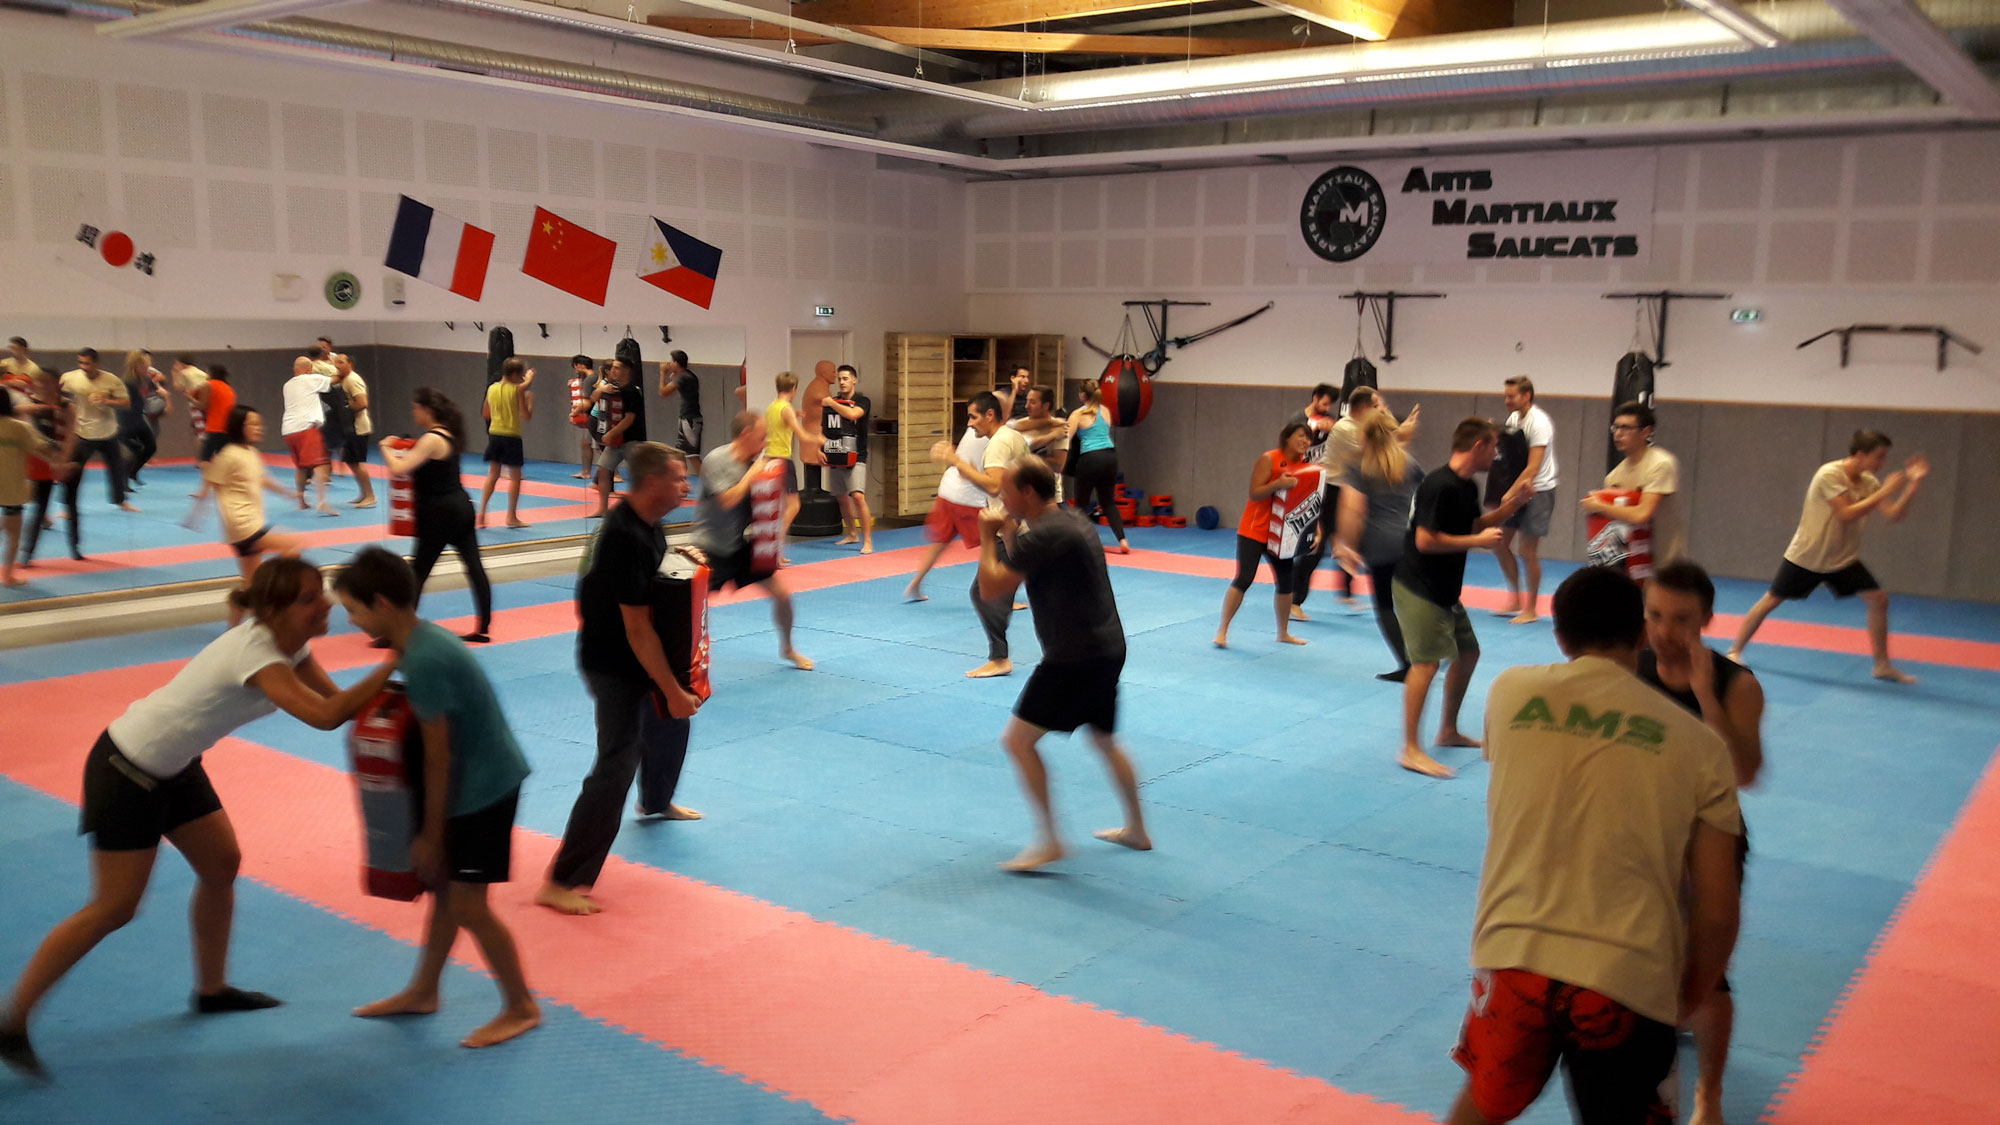 arts-martiaux-saucats-self-defense-karate-defense-training-2